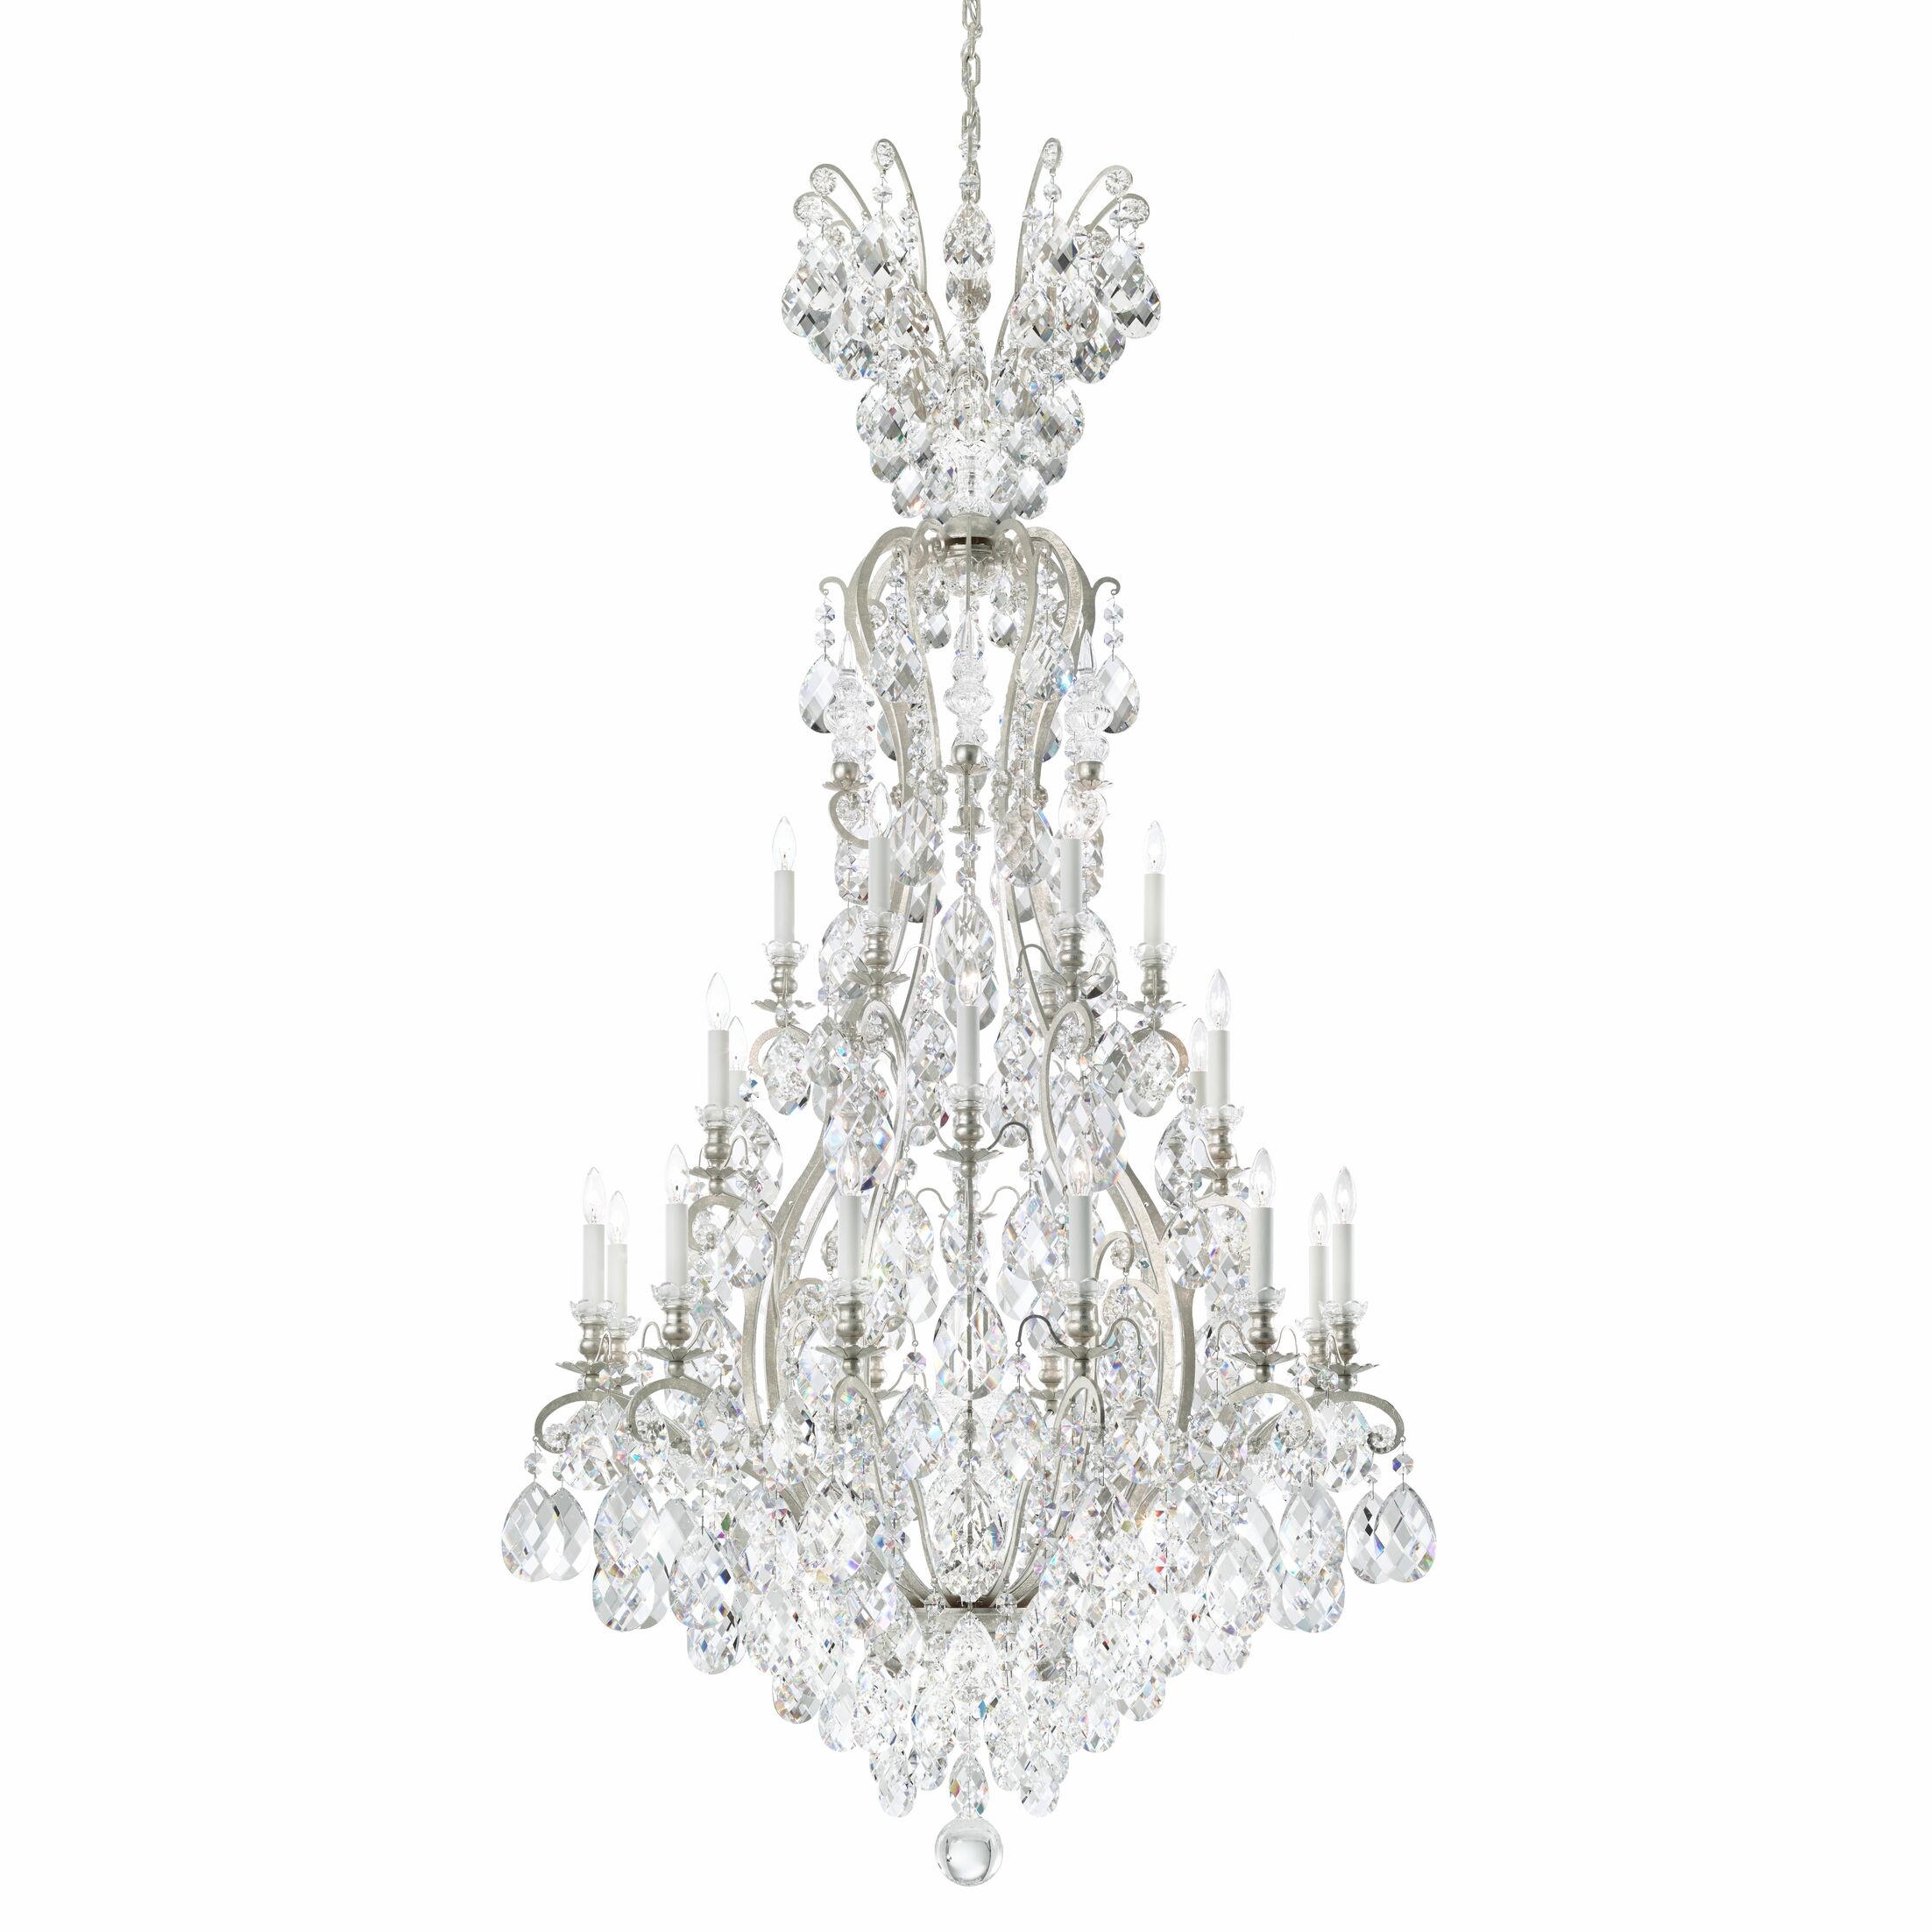 Renaissance 24-Light Candle Style Chandelier Crystal Grade: Clear from Swarovski, Finish: Heirloom Bronze